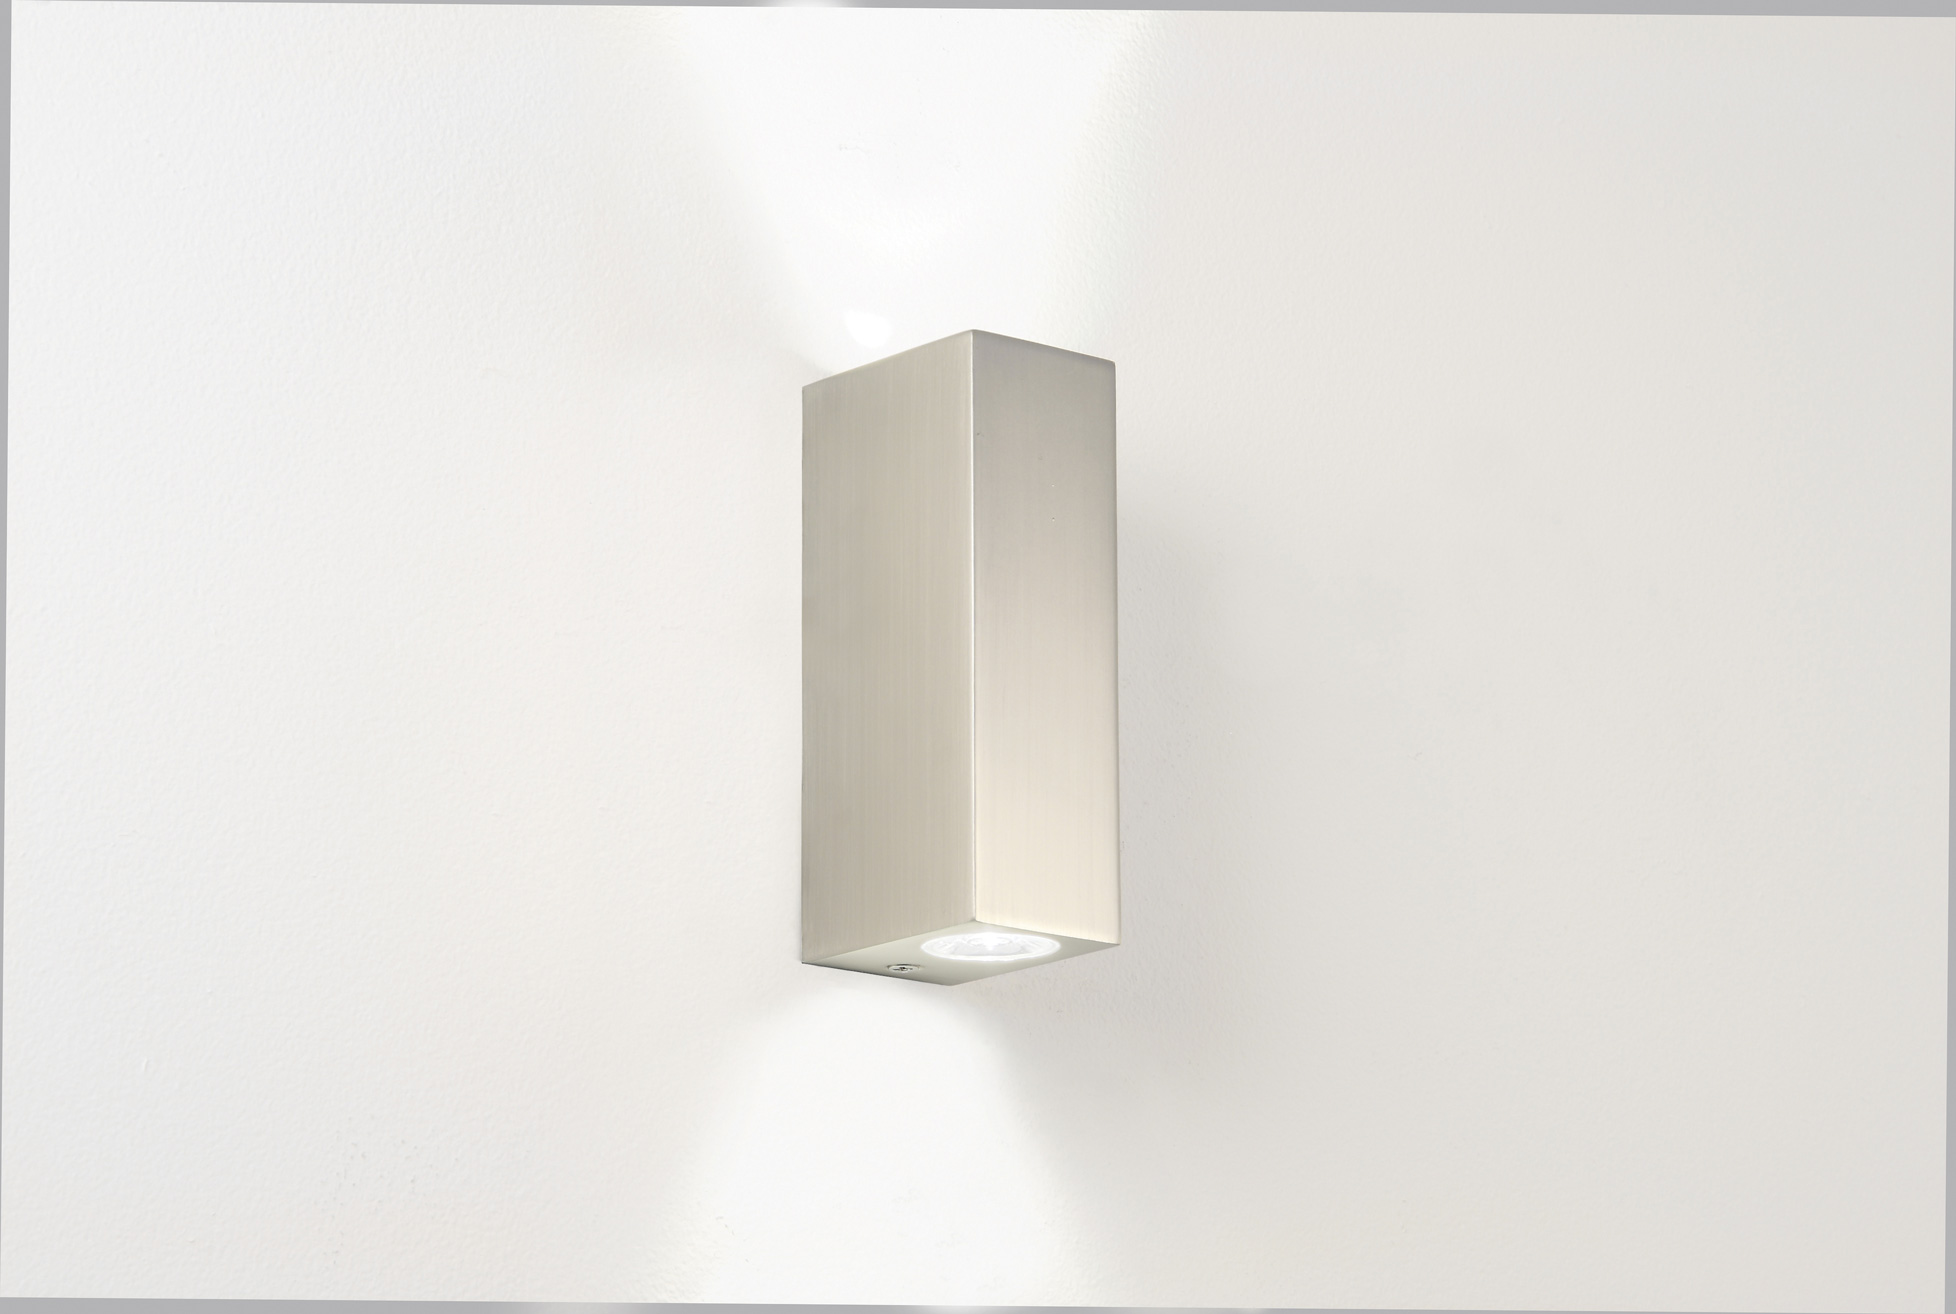 ASTRO Bloc 0824 bathroom LED wall light 2 X 1W 3000K warmwhite Luxeon nickel Thumbnail 1